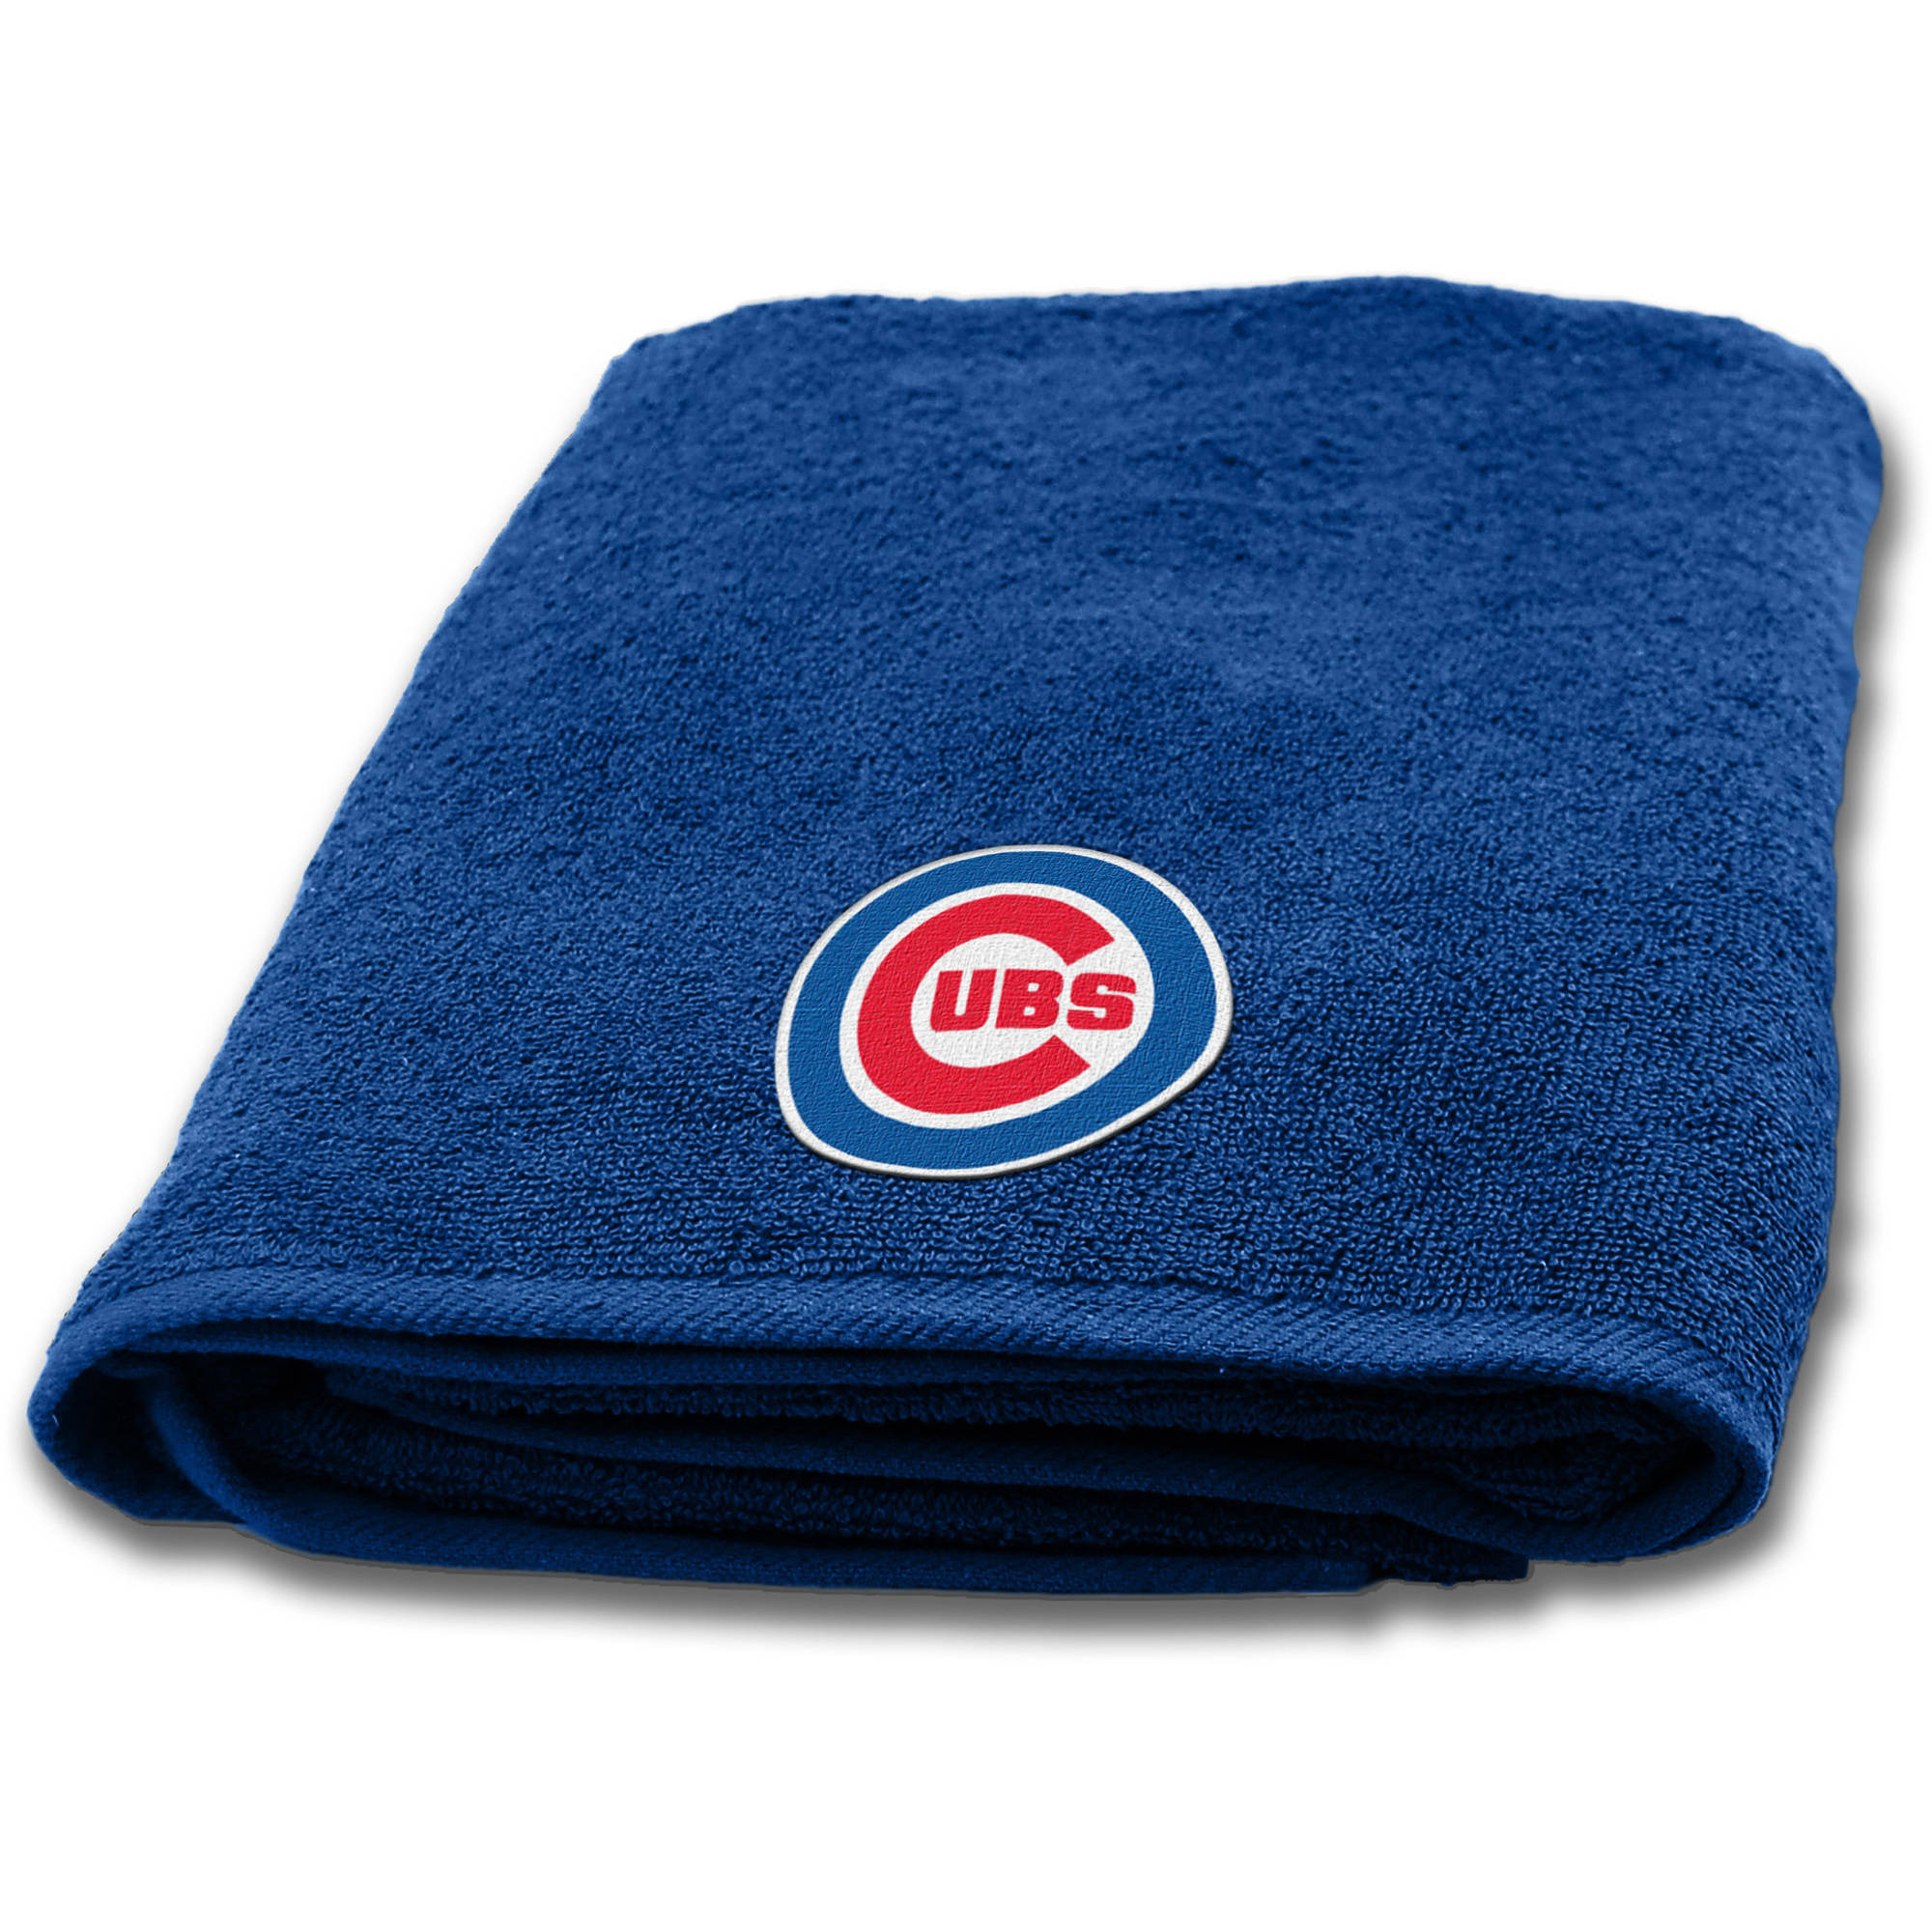 """MLB Chicago Cubs 25""""x50"""" Applique Bath Towel by The Northwest Company"""